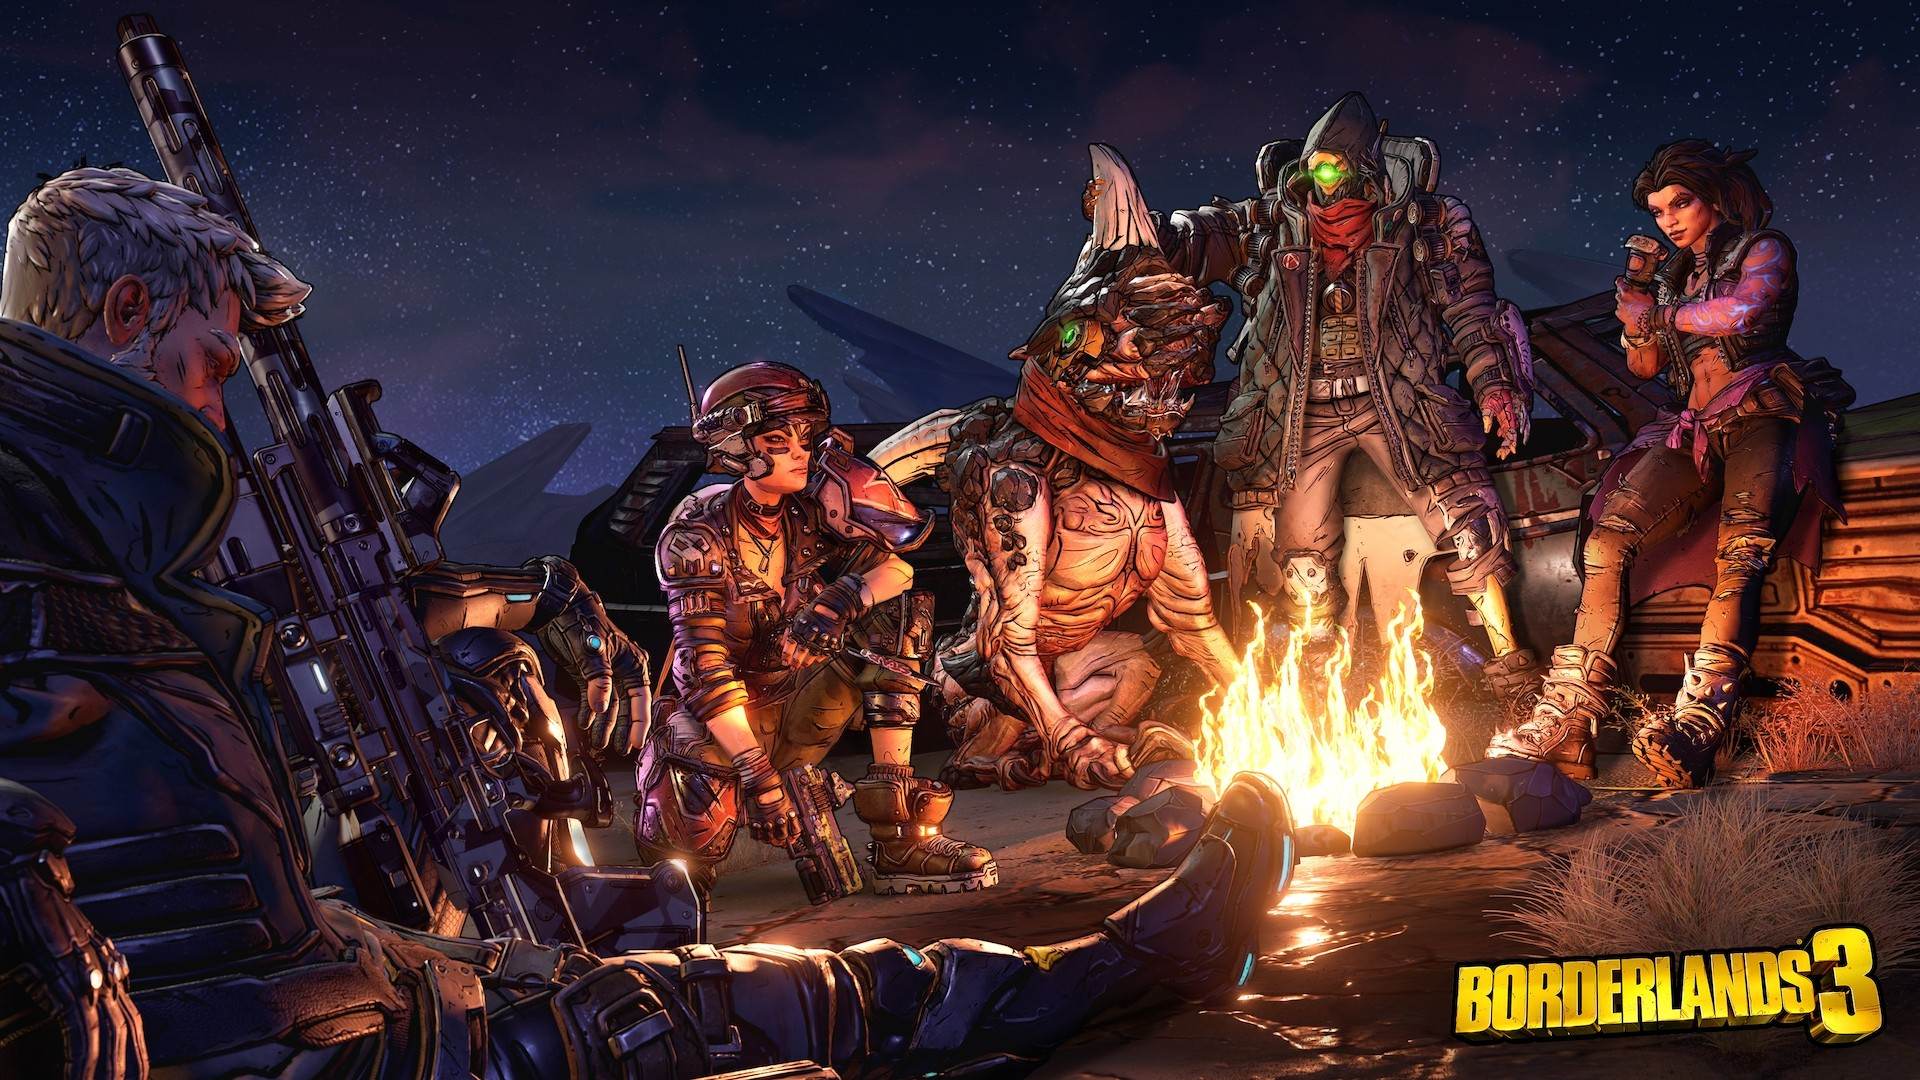 Borderlands 3 Wallpaper image hd